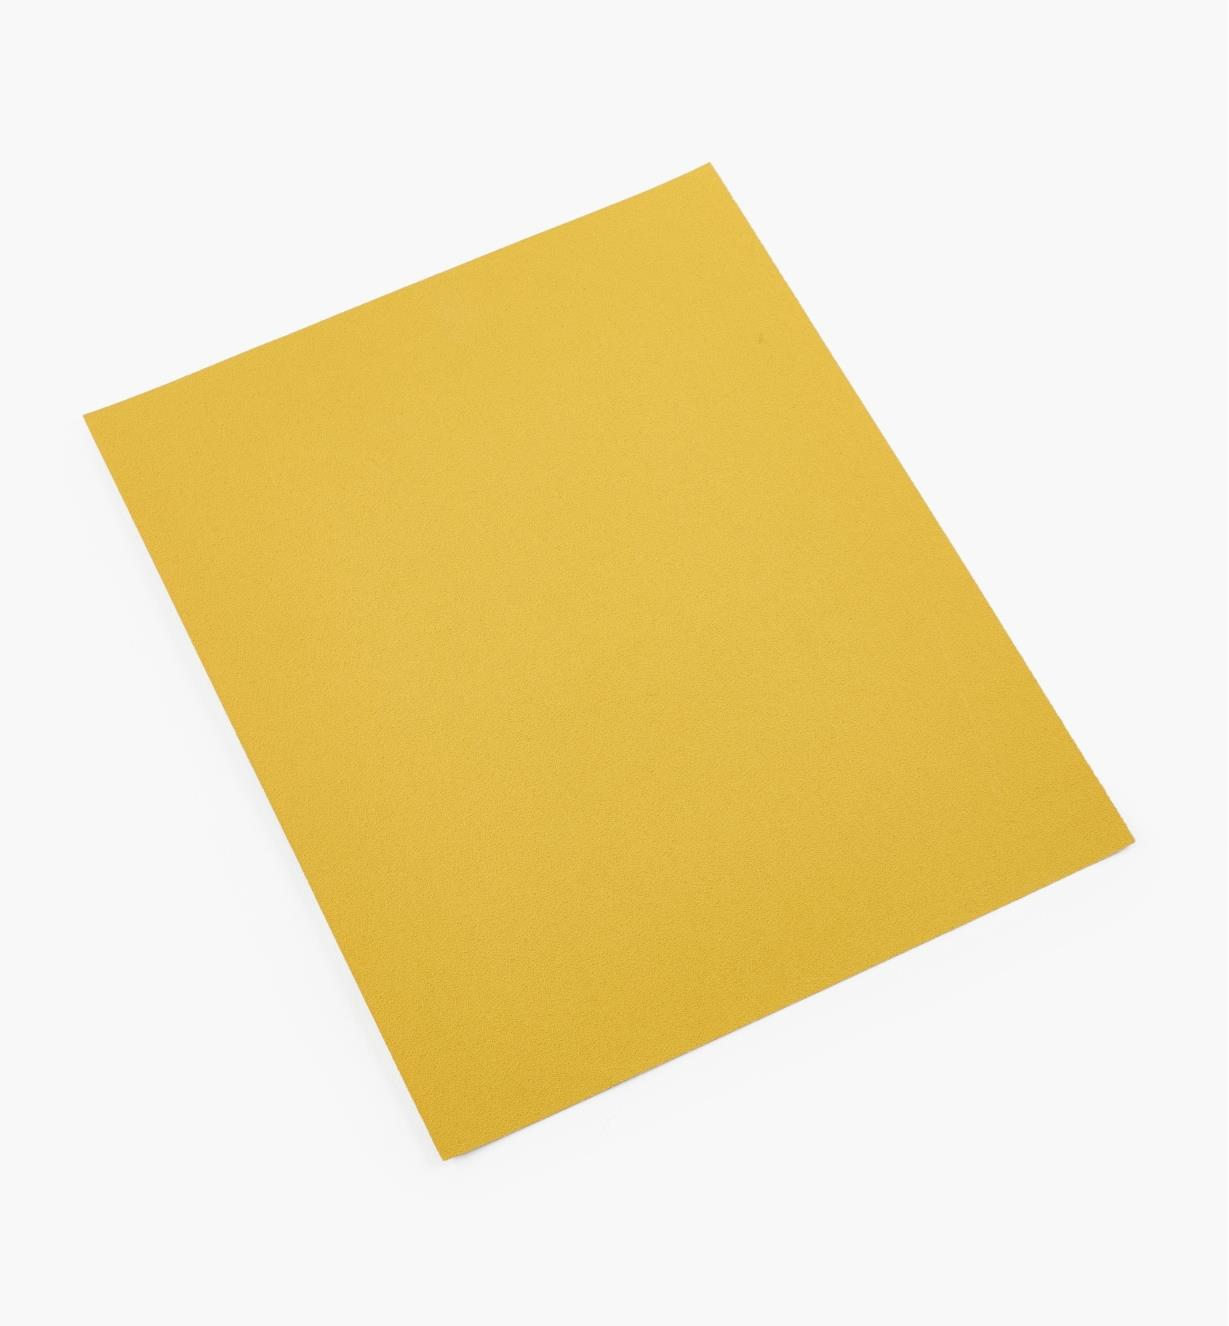 54K8203 - 3M No-Load Sandpaper, 120x